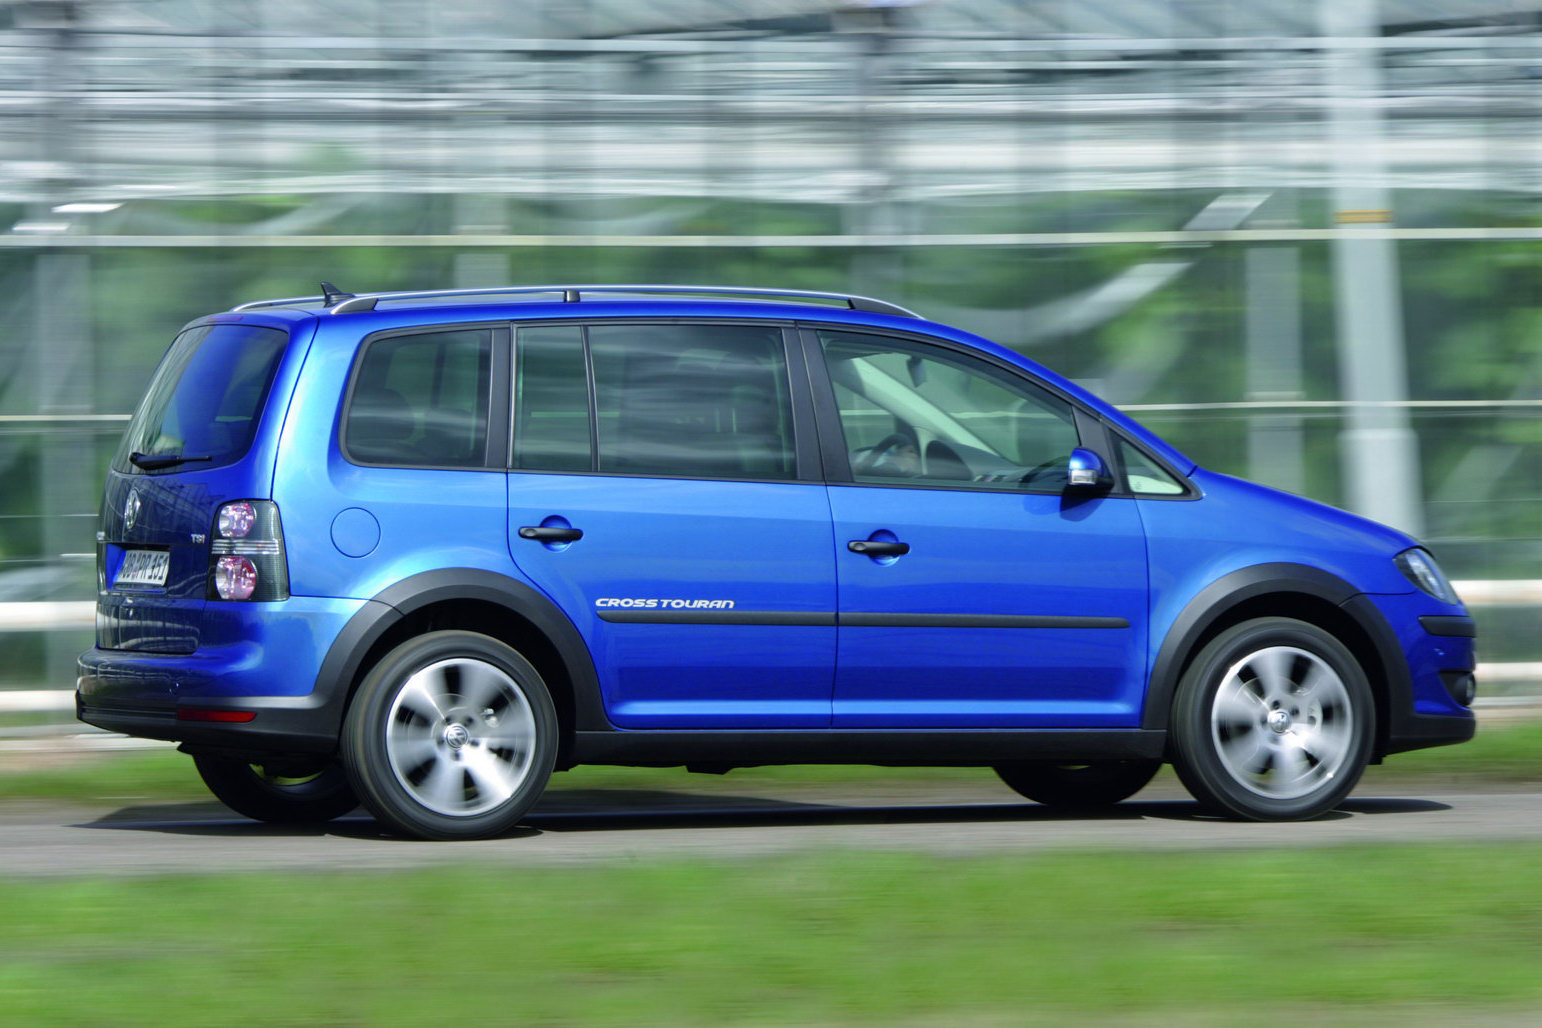 new volkswagen touran mpv confirmed for leipzig auto show carscoops. Black Bedroom Furniture Sets. Home Design Ideas